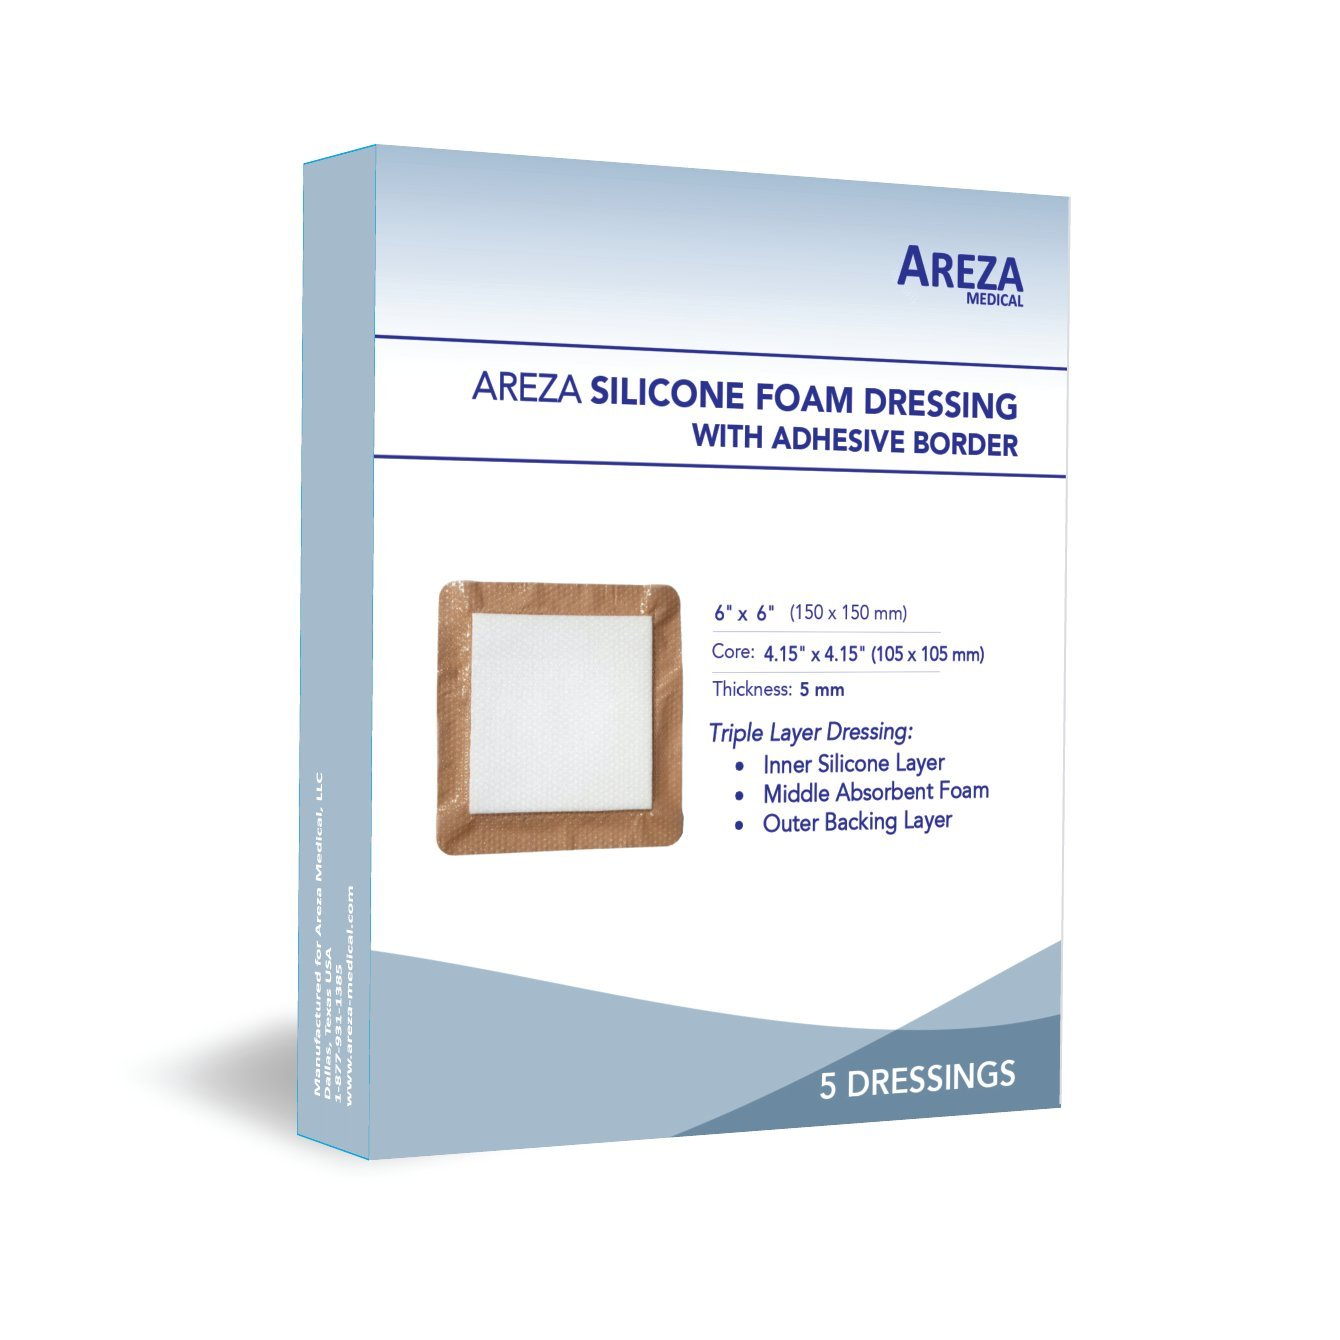 Silicone Foam Dressing with Border (Adhesive) Waterproof 6'' X 6'' (15 cm X 15 cm) (Central Ultra Absorbent-Foam Pad is 4'' X 4'') 5 Per Box (1); Wound Dressing by Areza Medical by Areza Medical